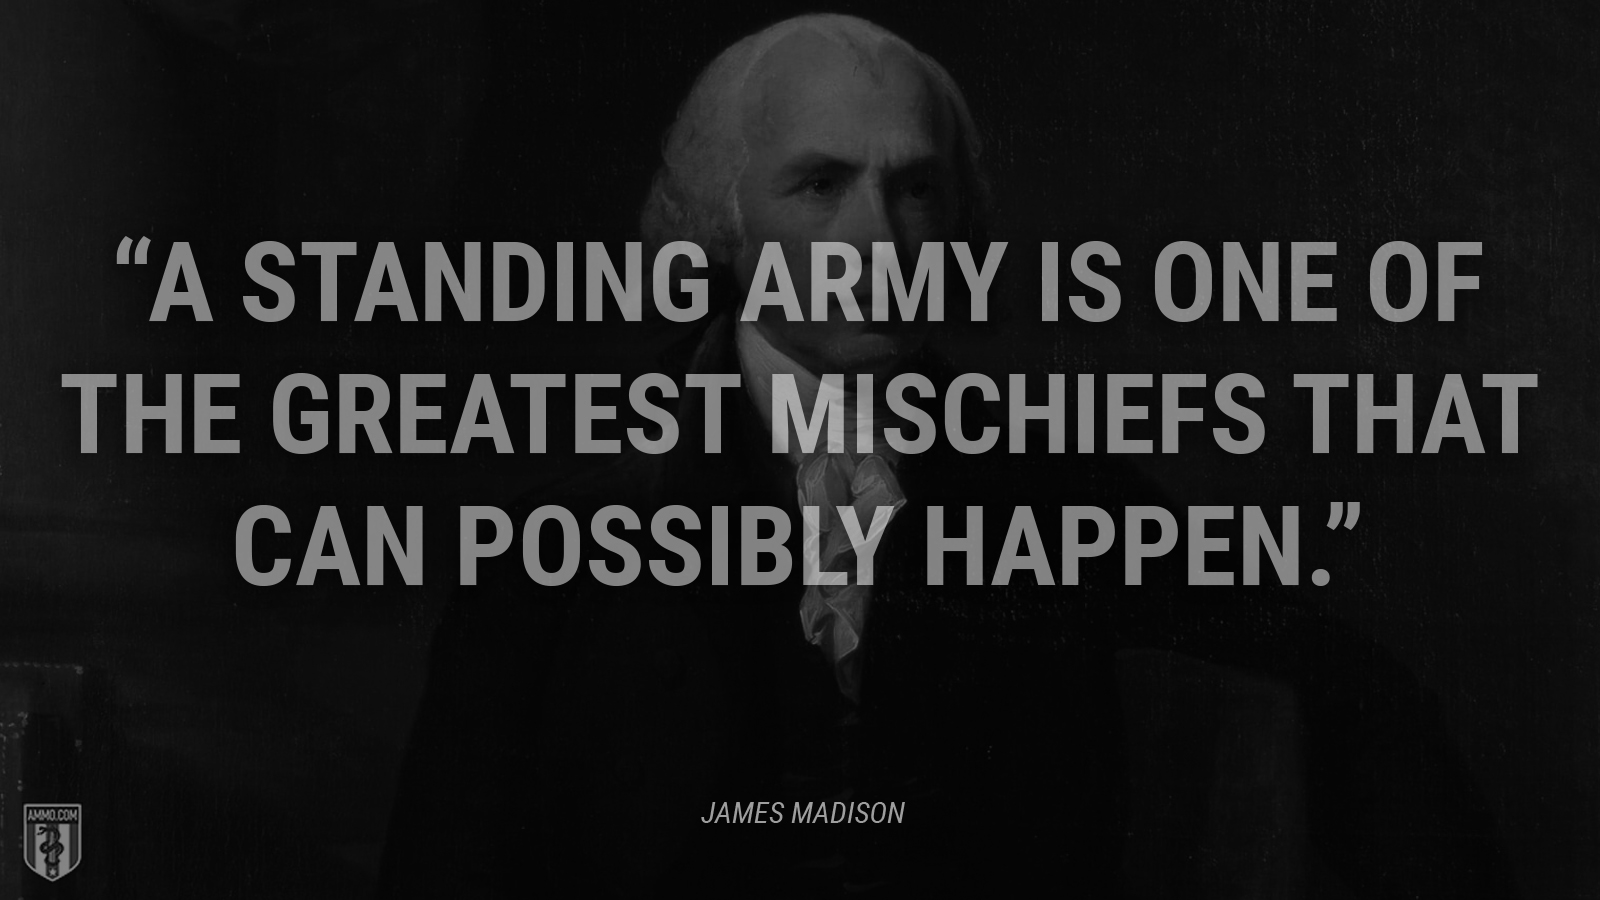 """A standing army is one of the greatest mischiefs that can possibly happen."" - James Madison"